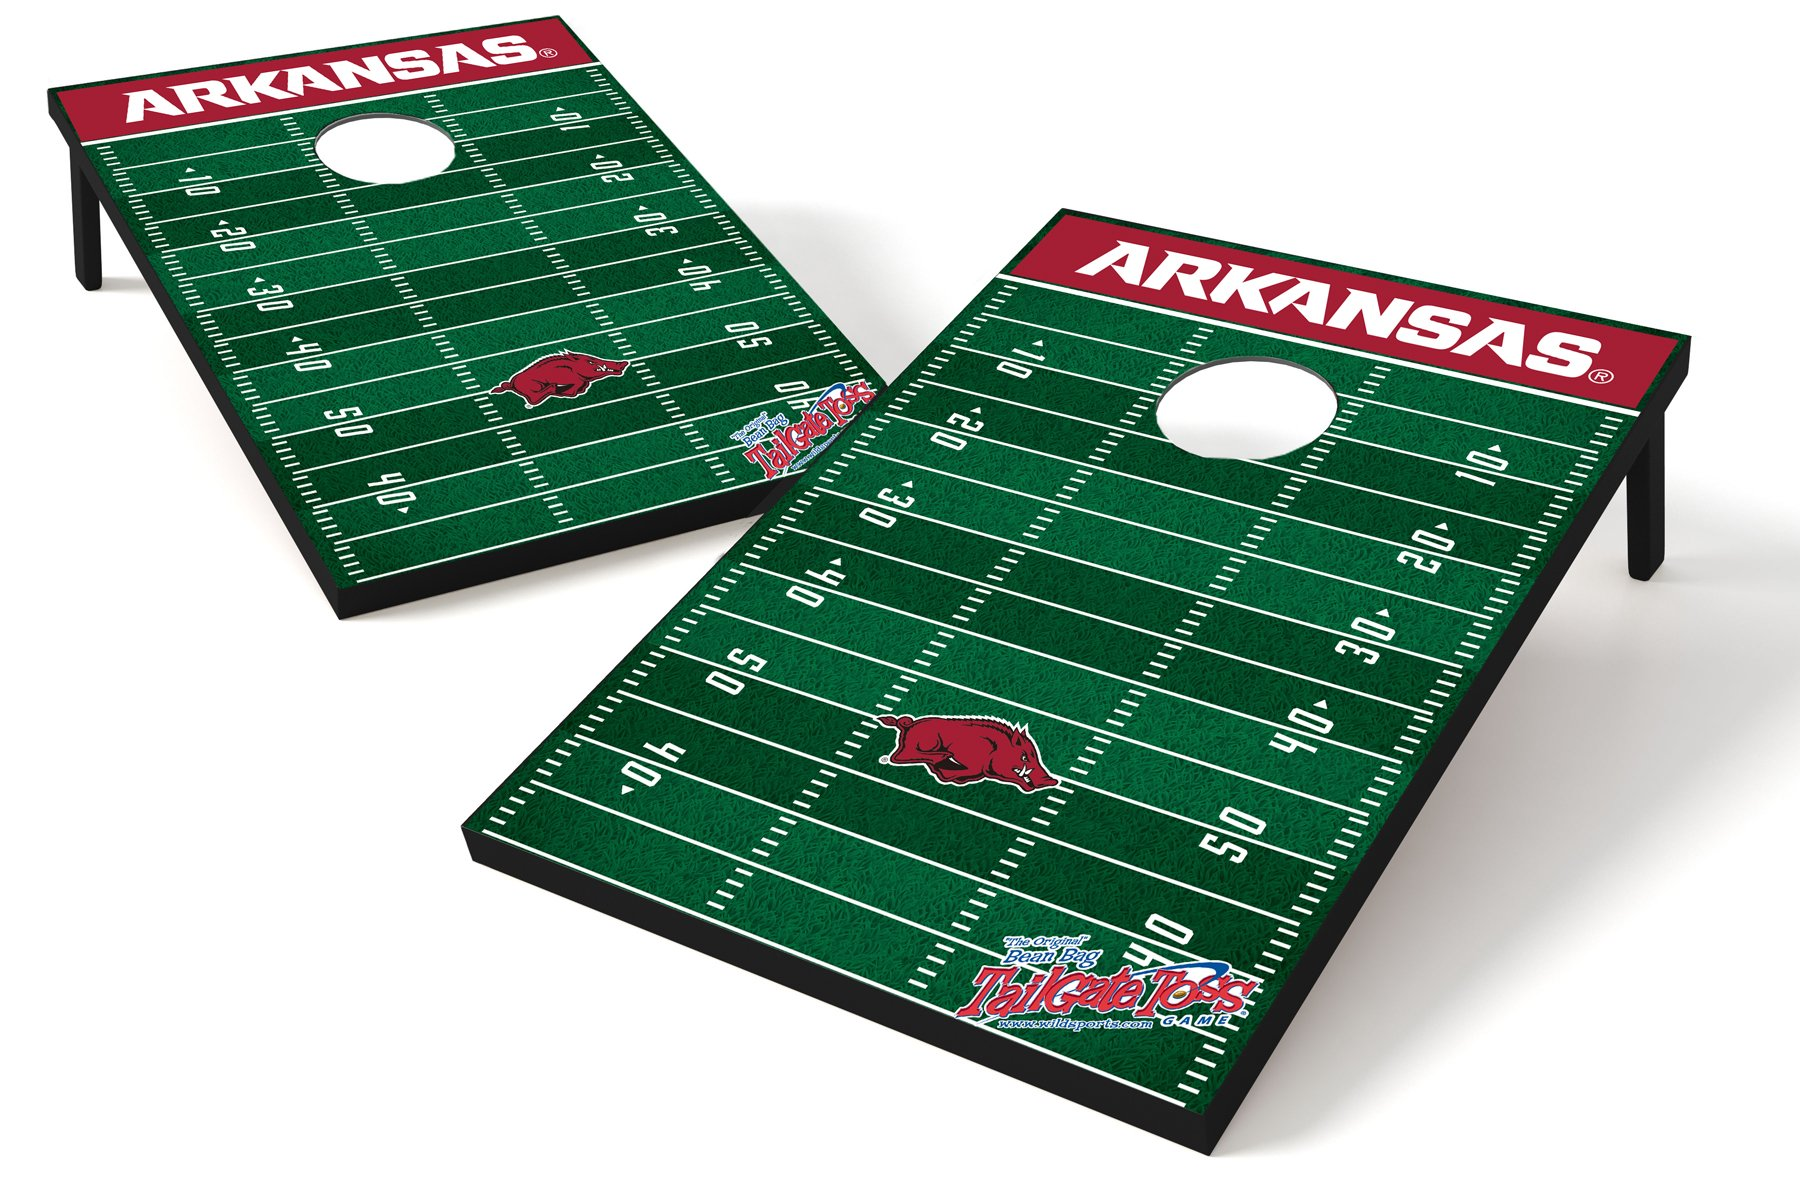 NCAA College Arkansas Razorbacks Tailgate Toss Game by Wild Sports (Image #1)